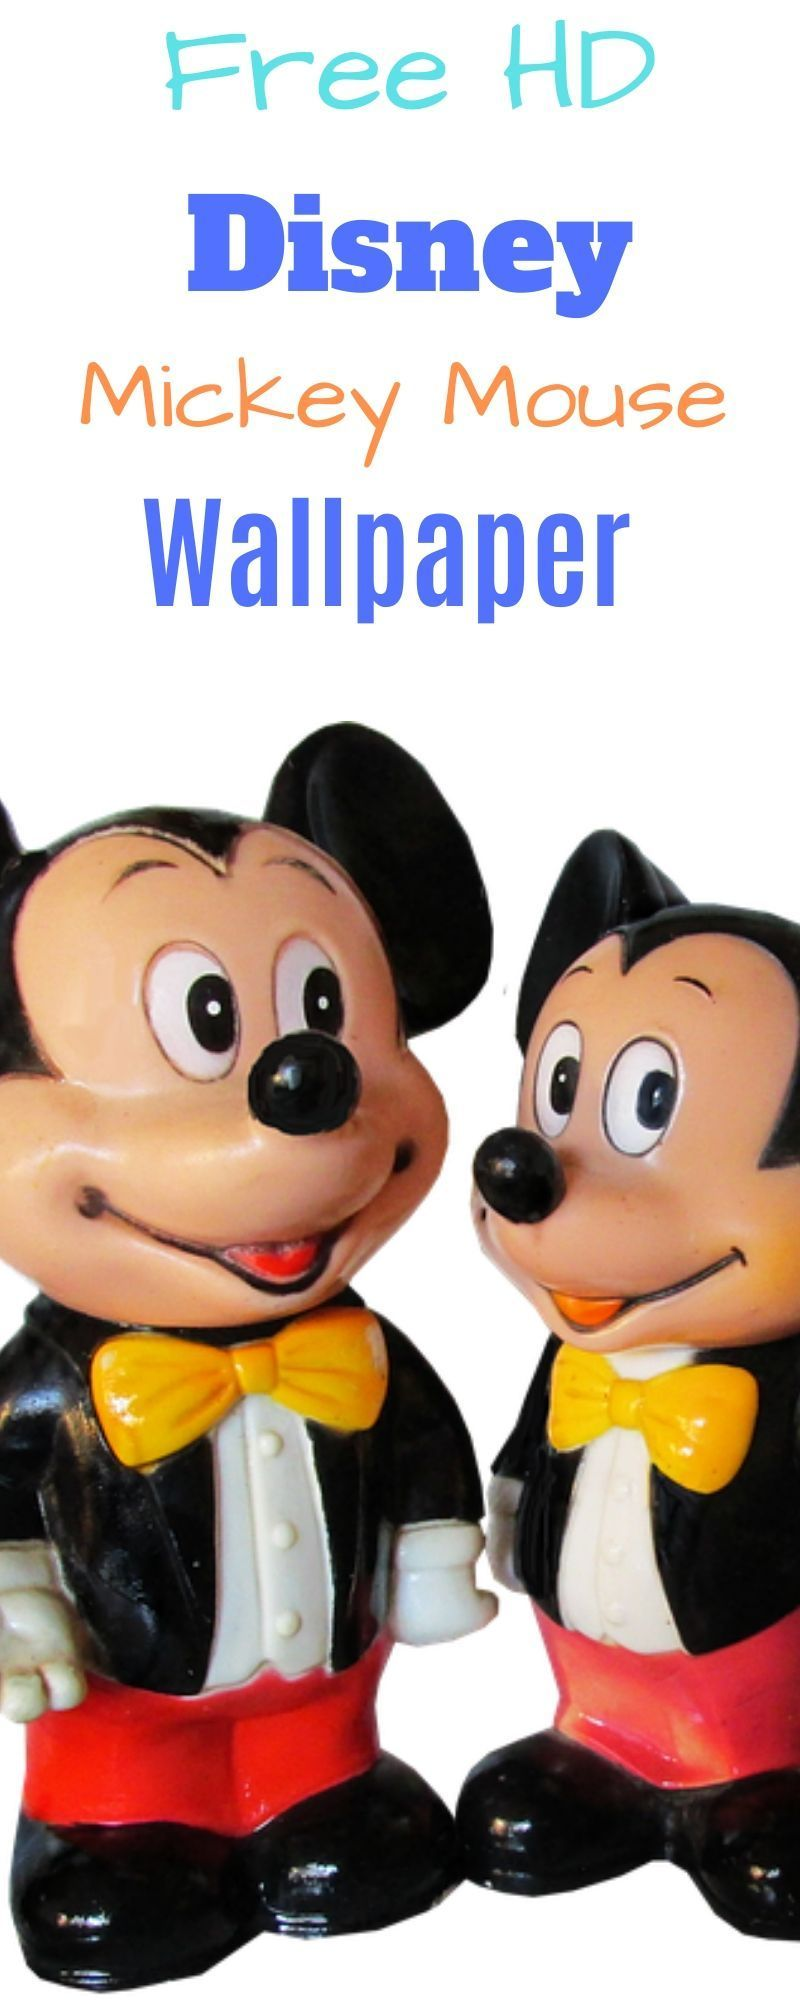 Disney Mickey Mouse Wallpaper for Desktop and For Phone #mickeymousebirthdaypartyideas1st Disney wallpaper download mickey mouse wallpaper mickey mouse birthday mickey mouse cake mickey mouse clubhouse birthday party mickey mouse birthday party ideas 1st mickey mouse nails mickey mouse costumes  mickey mouse cartoon mickey mouse drawing mickey mouse tattoo mickey mouse fiesta decorations #mickeymousequotes #mickeymouseHalloween #mickeymouseprintables #mickeymouseDIY #mickeymouseears #mickeymouse #mickeymousebirthdaypartyideas1st